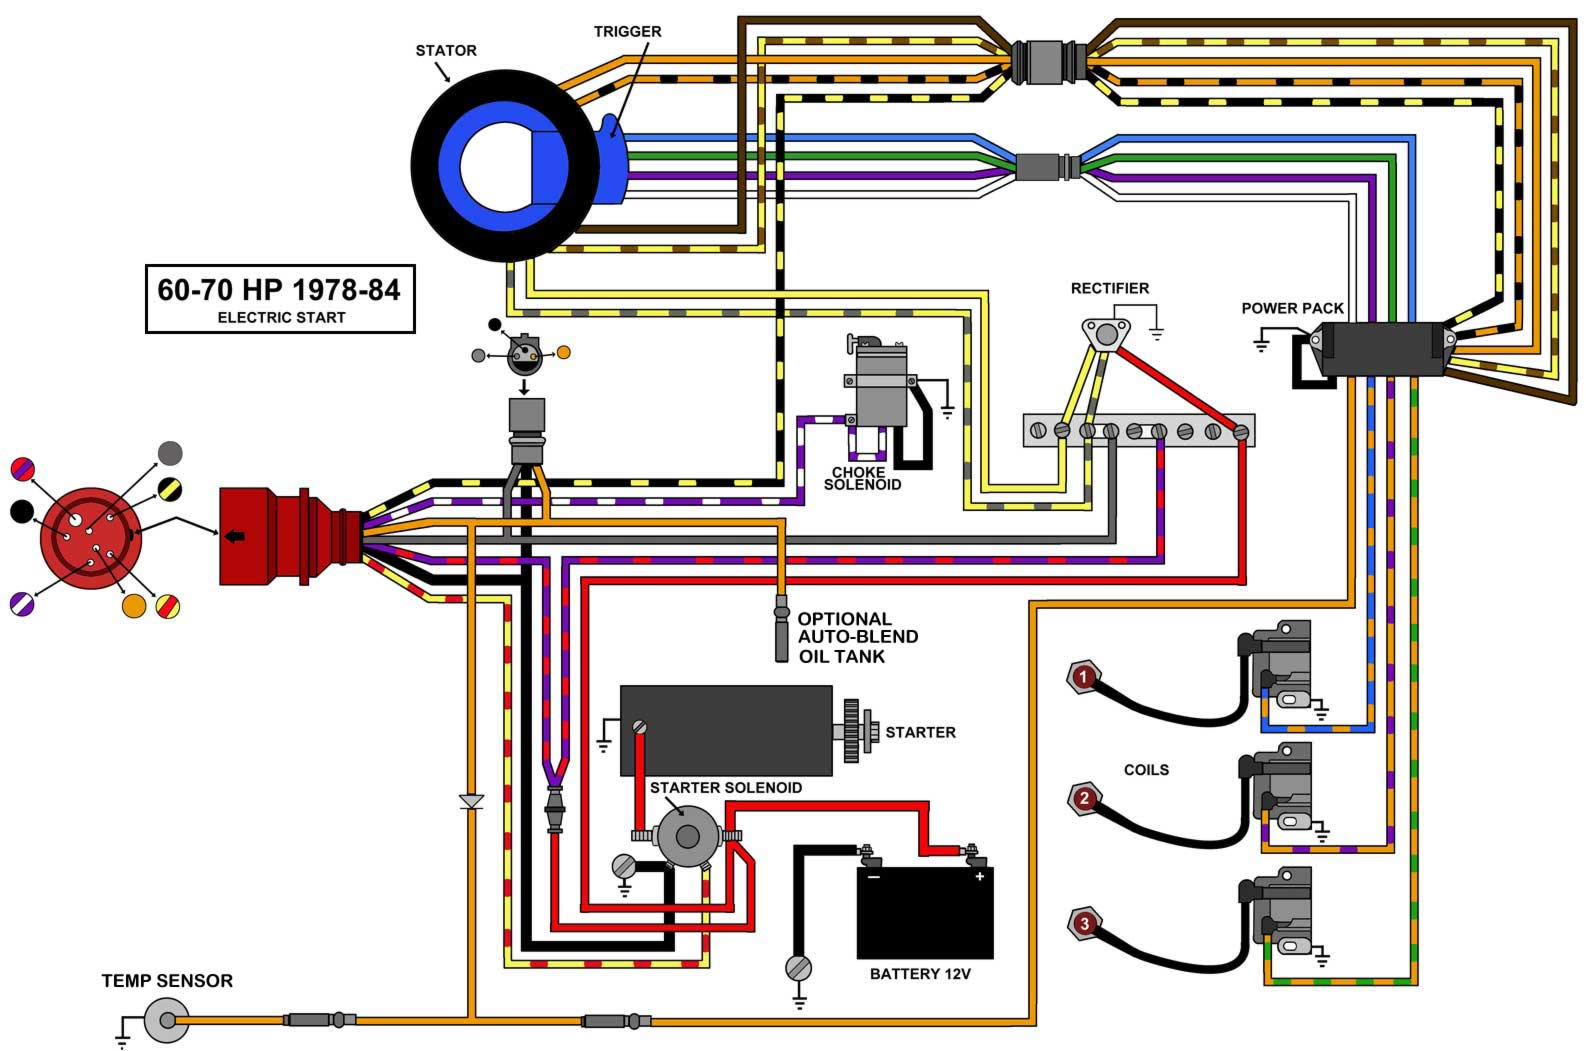 60 hp johnson outboard wiring diagram wiring diagram data schema 25 HP Evinrude Forum evinrude johnson outboard wiring diagrams mastertech marine johnson evinrude starter circuit wiring diagram 60 hp johnson outboard wiring diagram